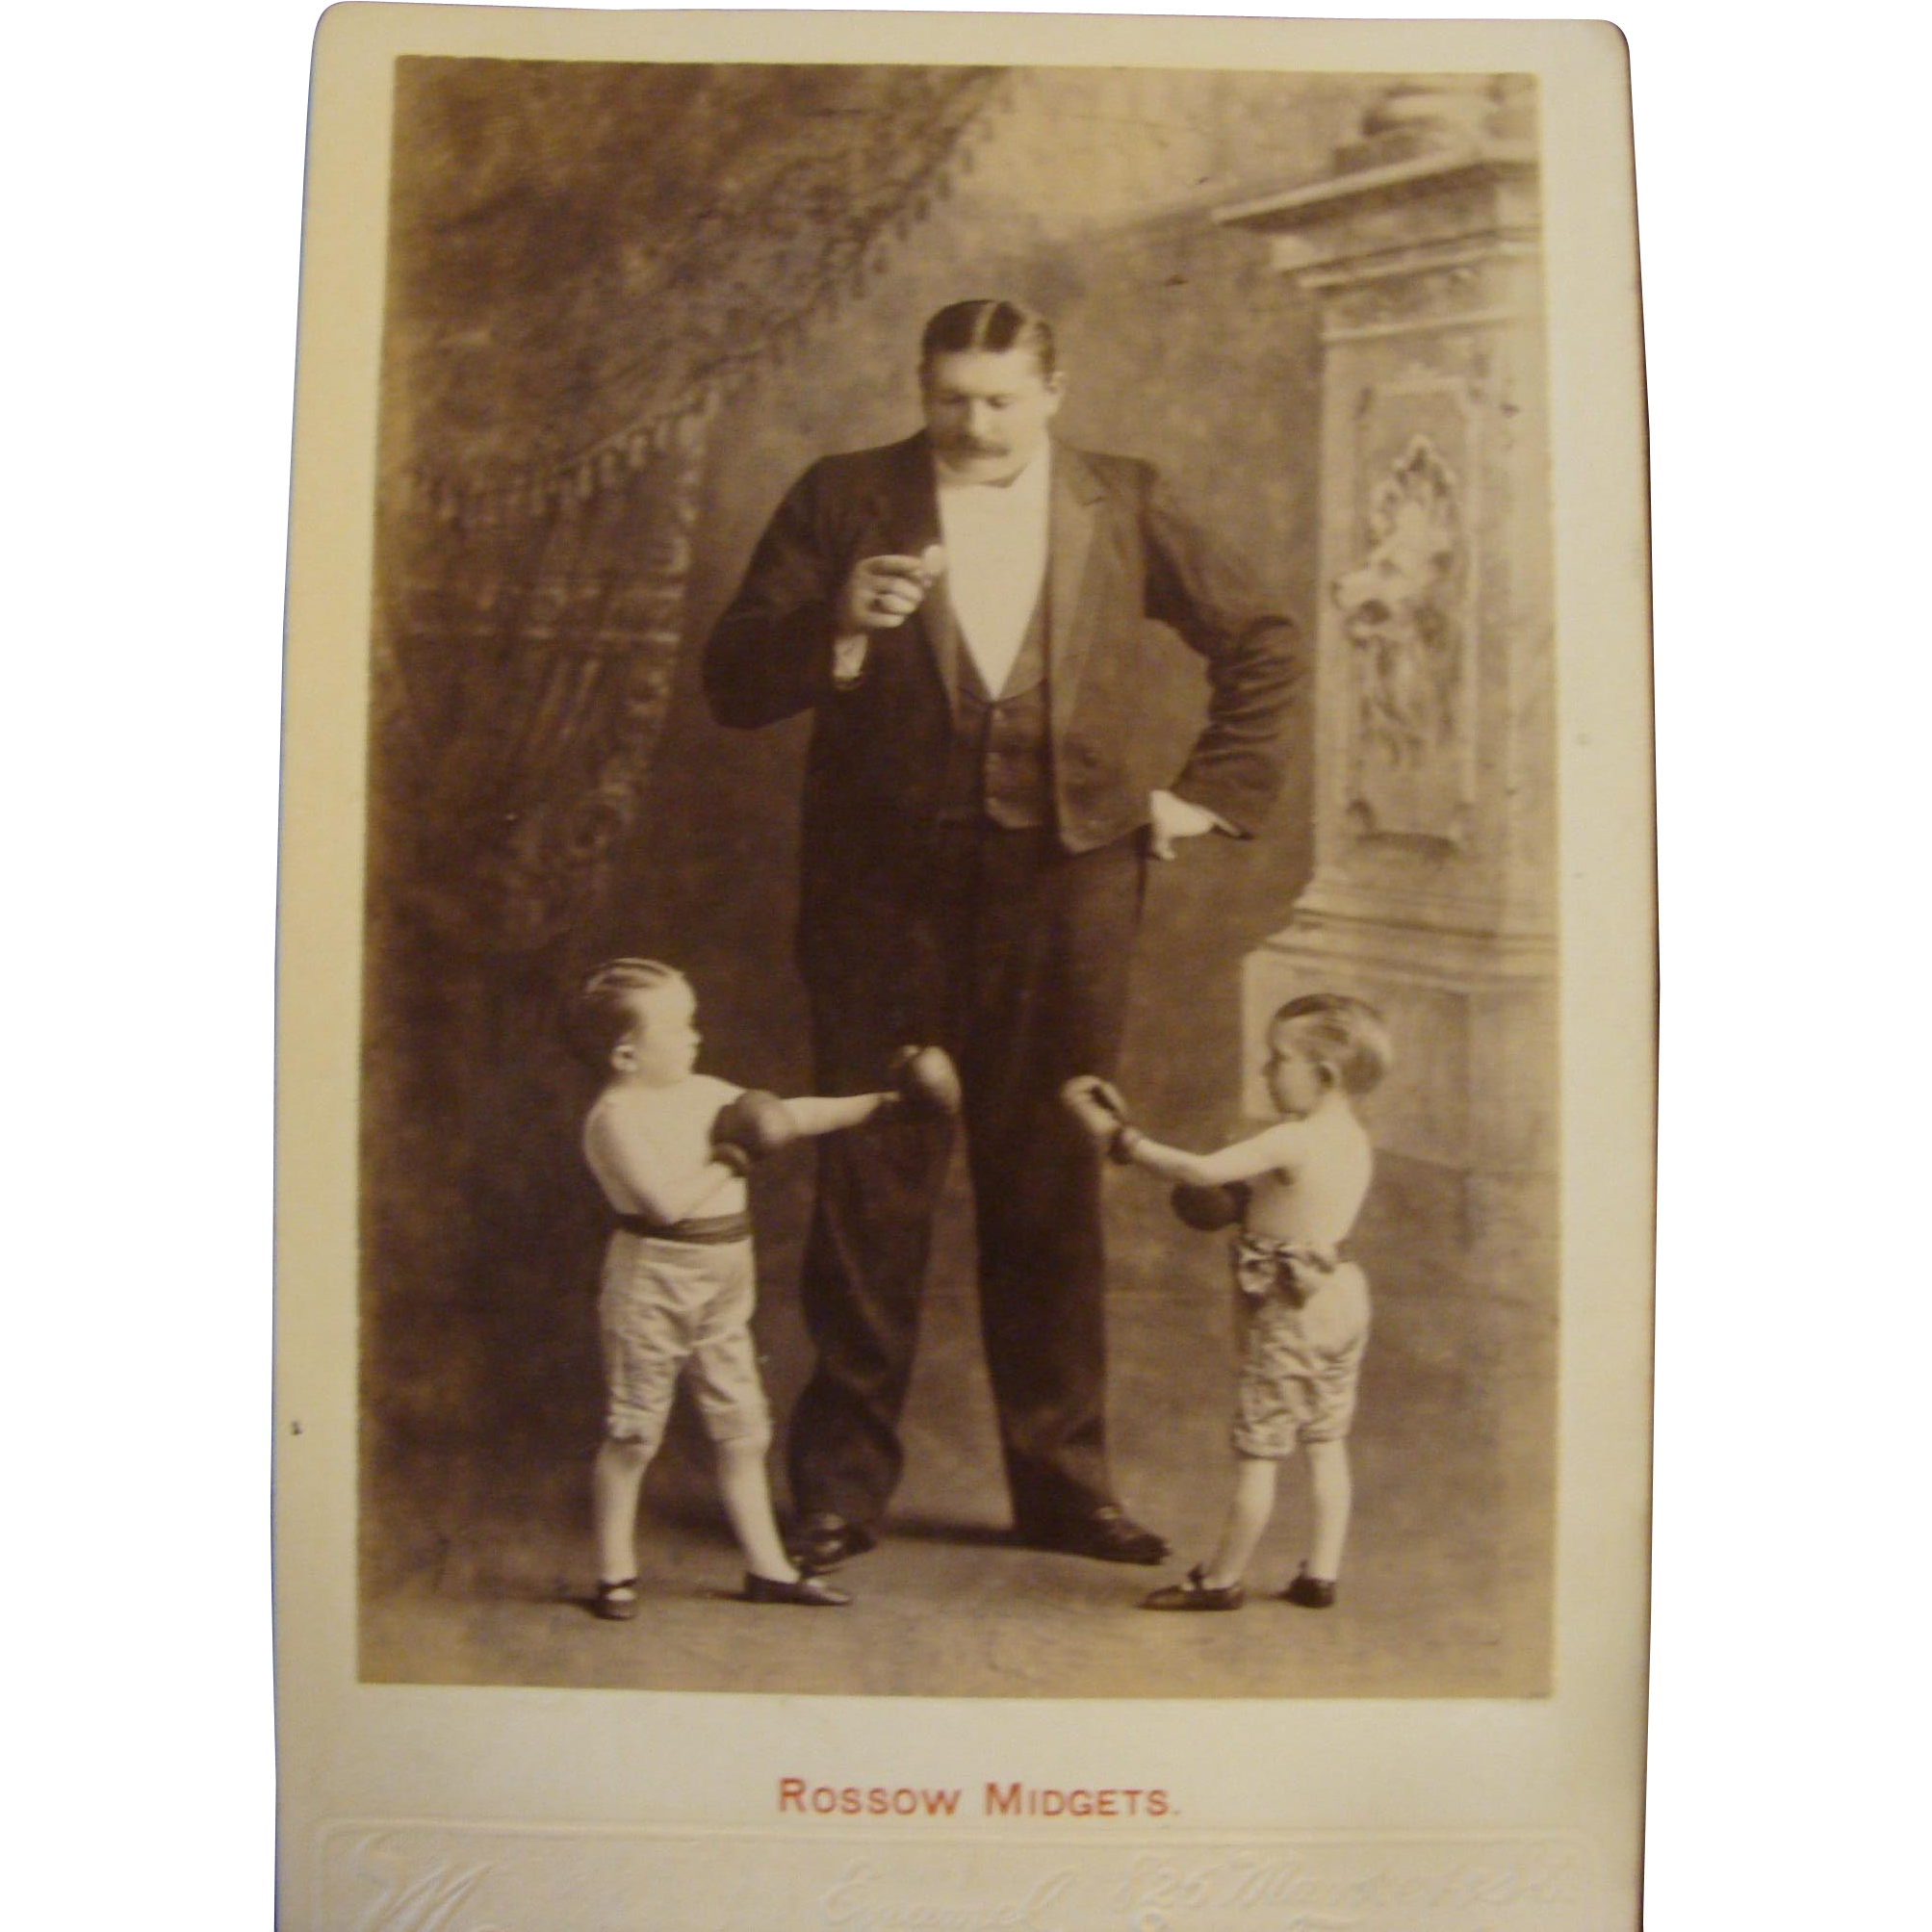 Cabinet Card Photo Rossow Midgets